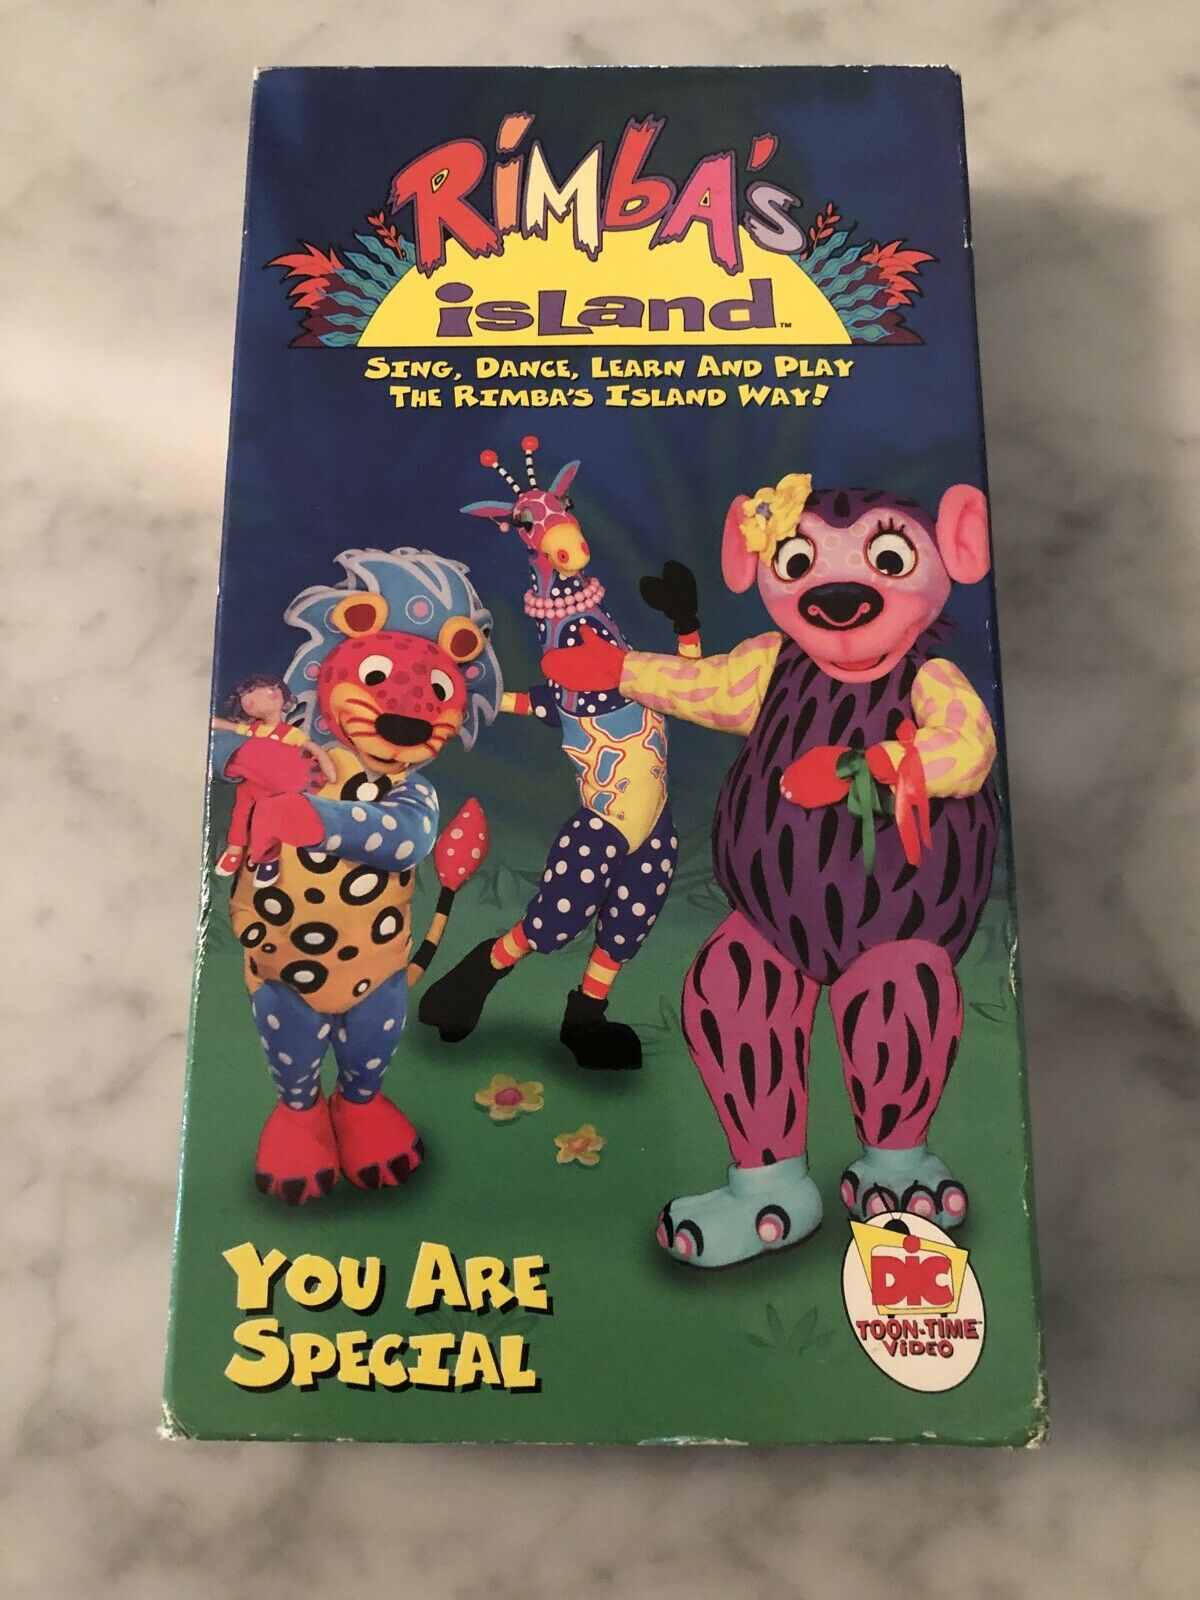 Rimba's Island: You Are Special (1995 VHS)